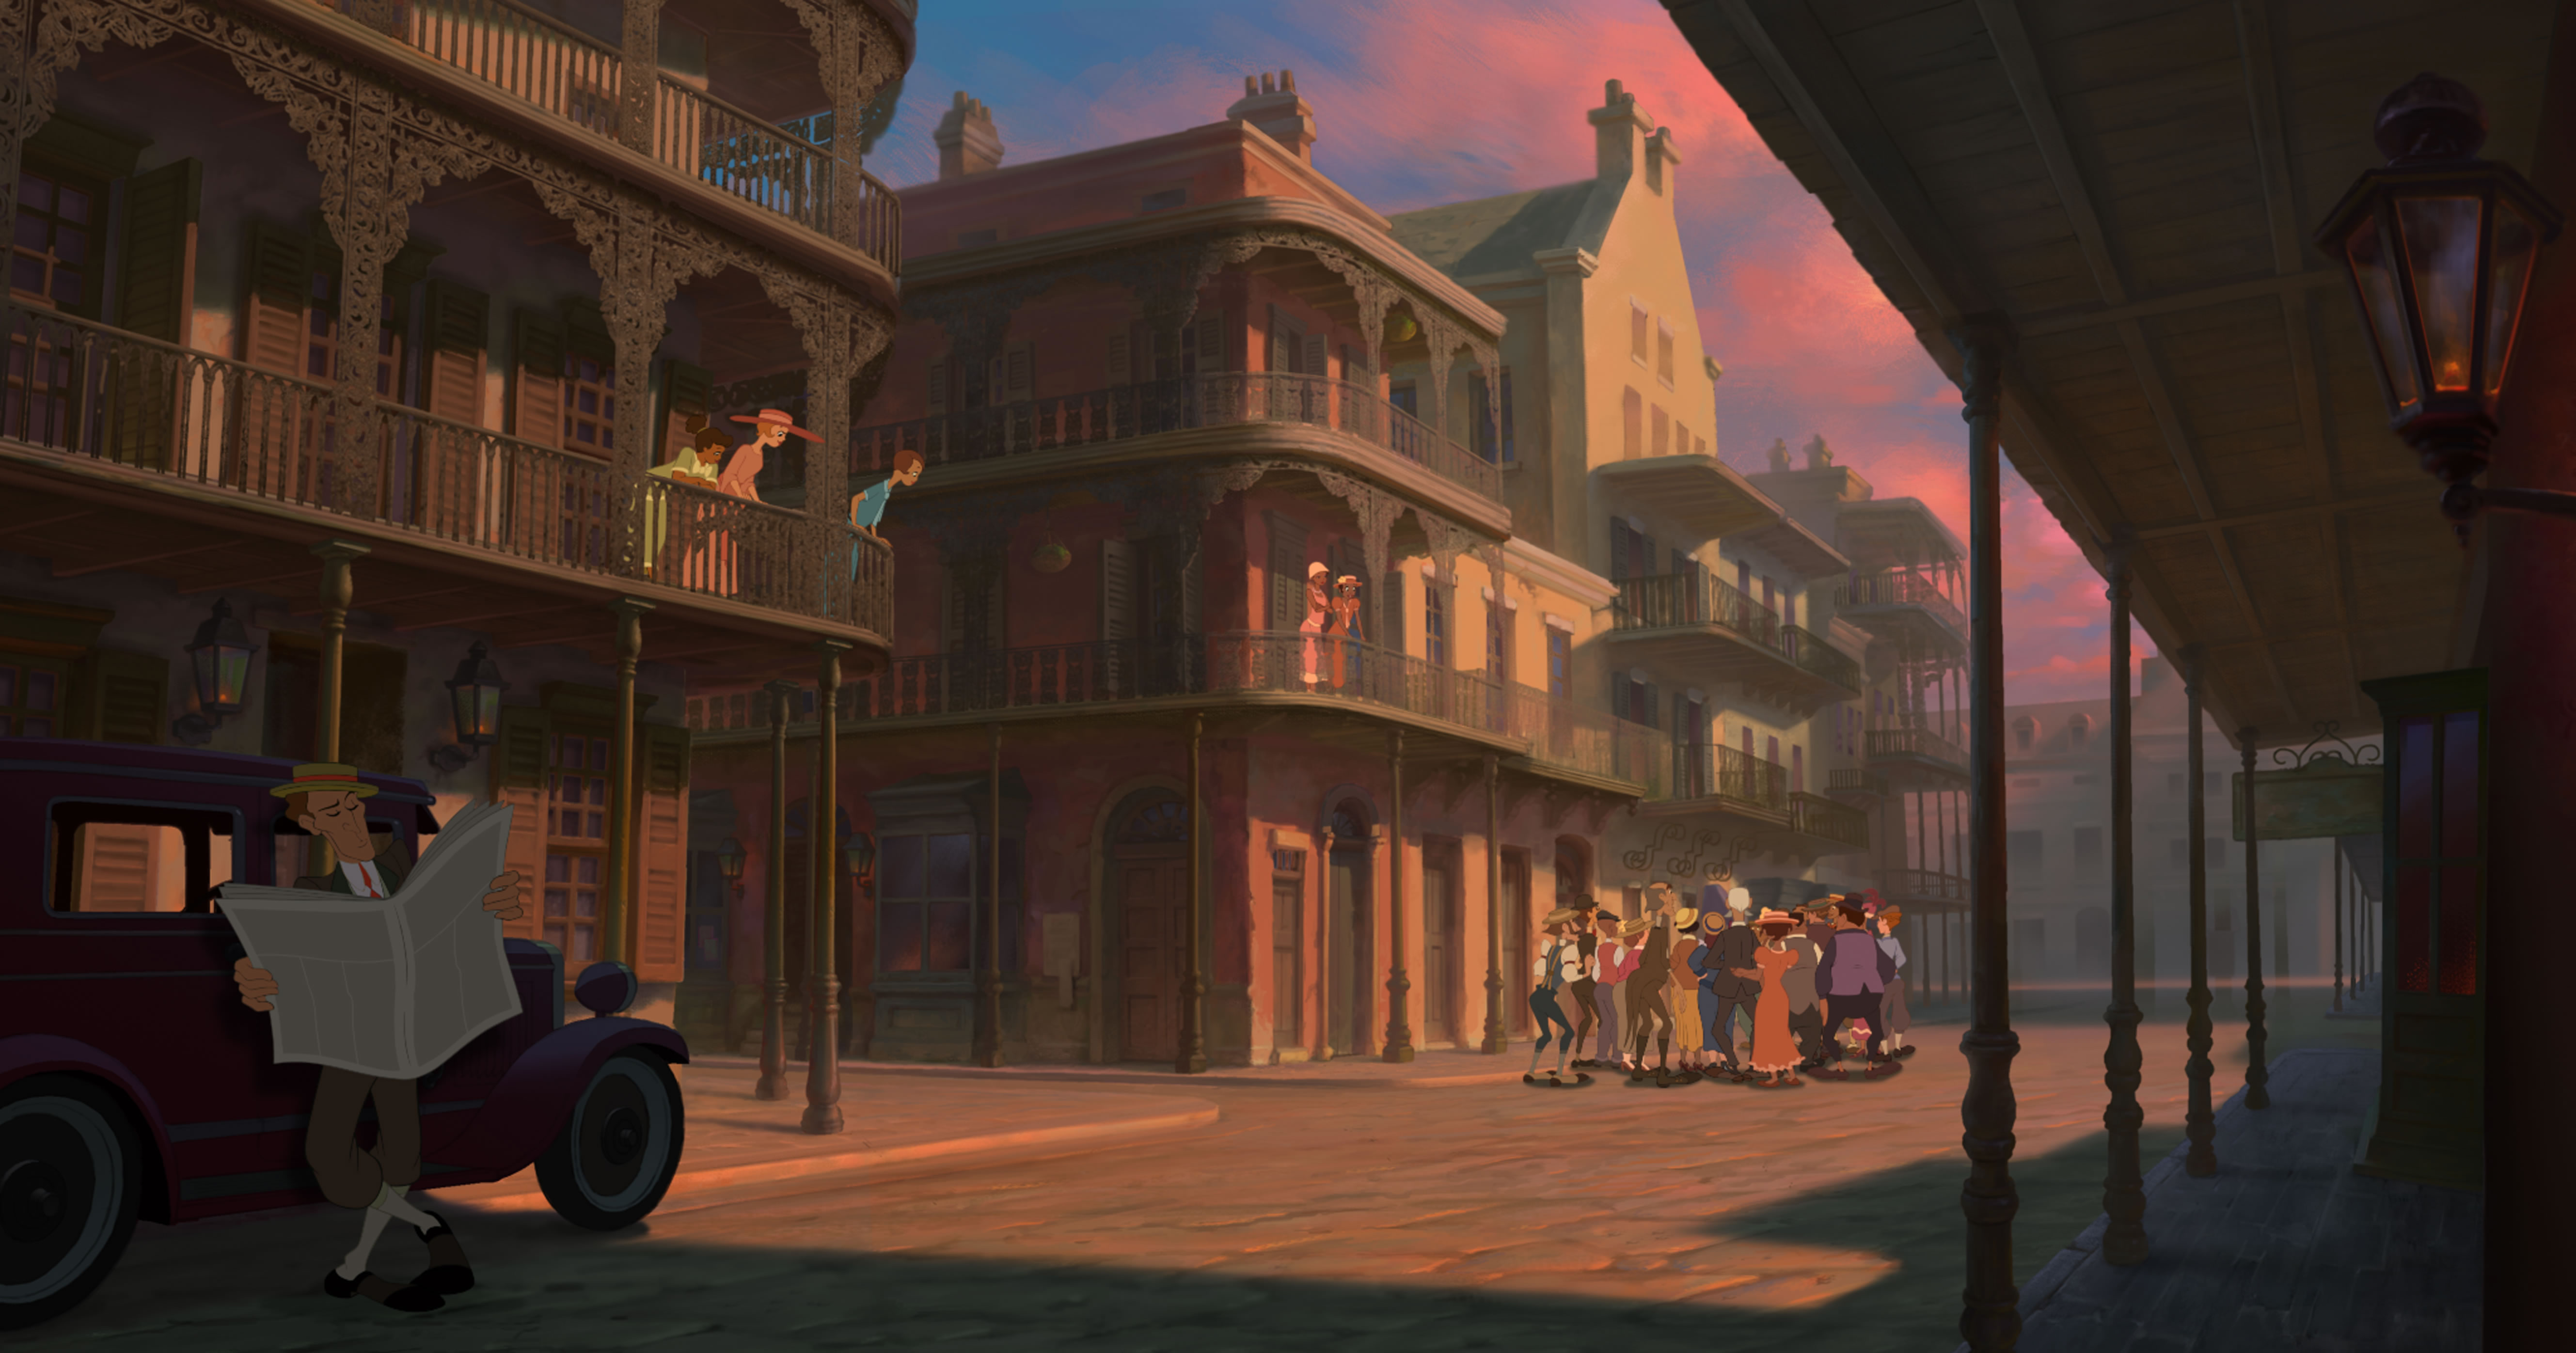 French Quarter from Disneys Princess and the Frog Desktop Wallpaper 5315x2792